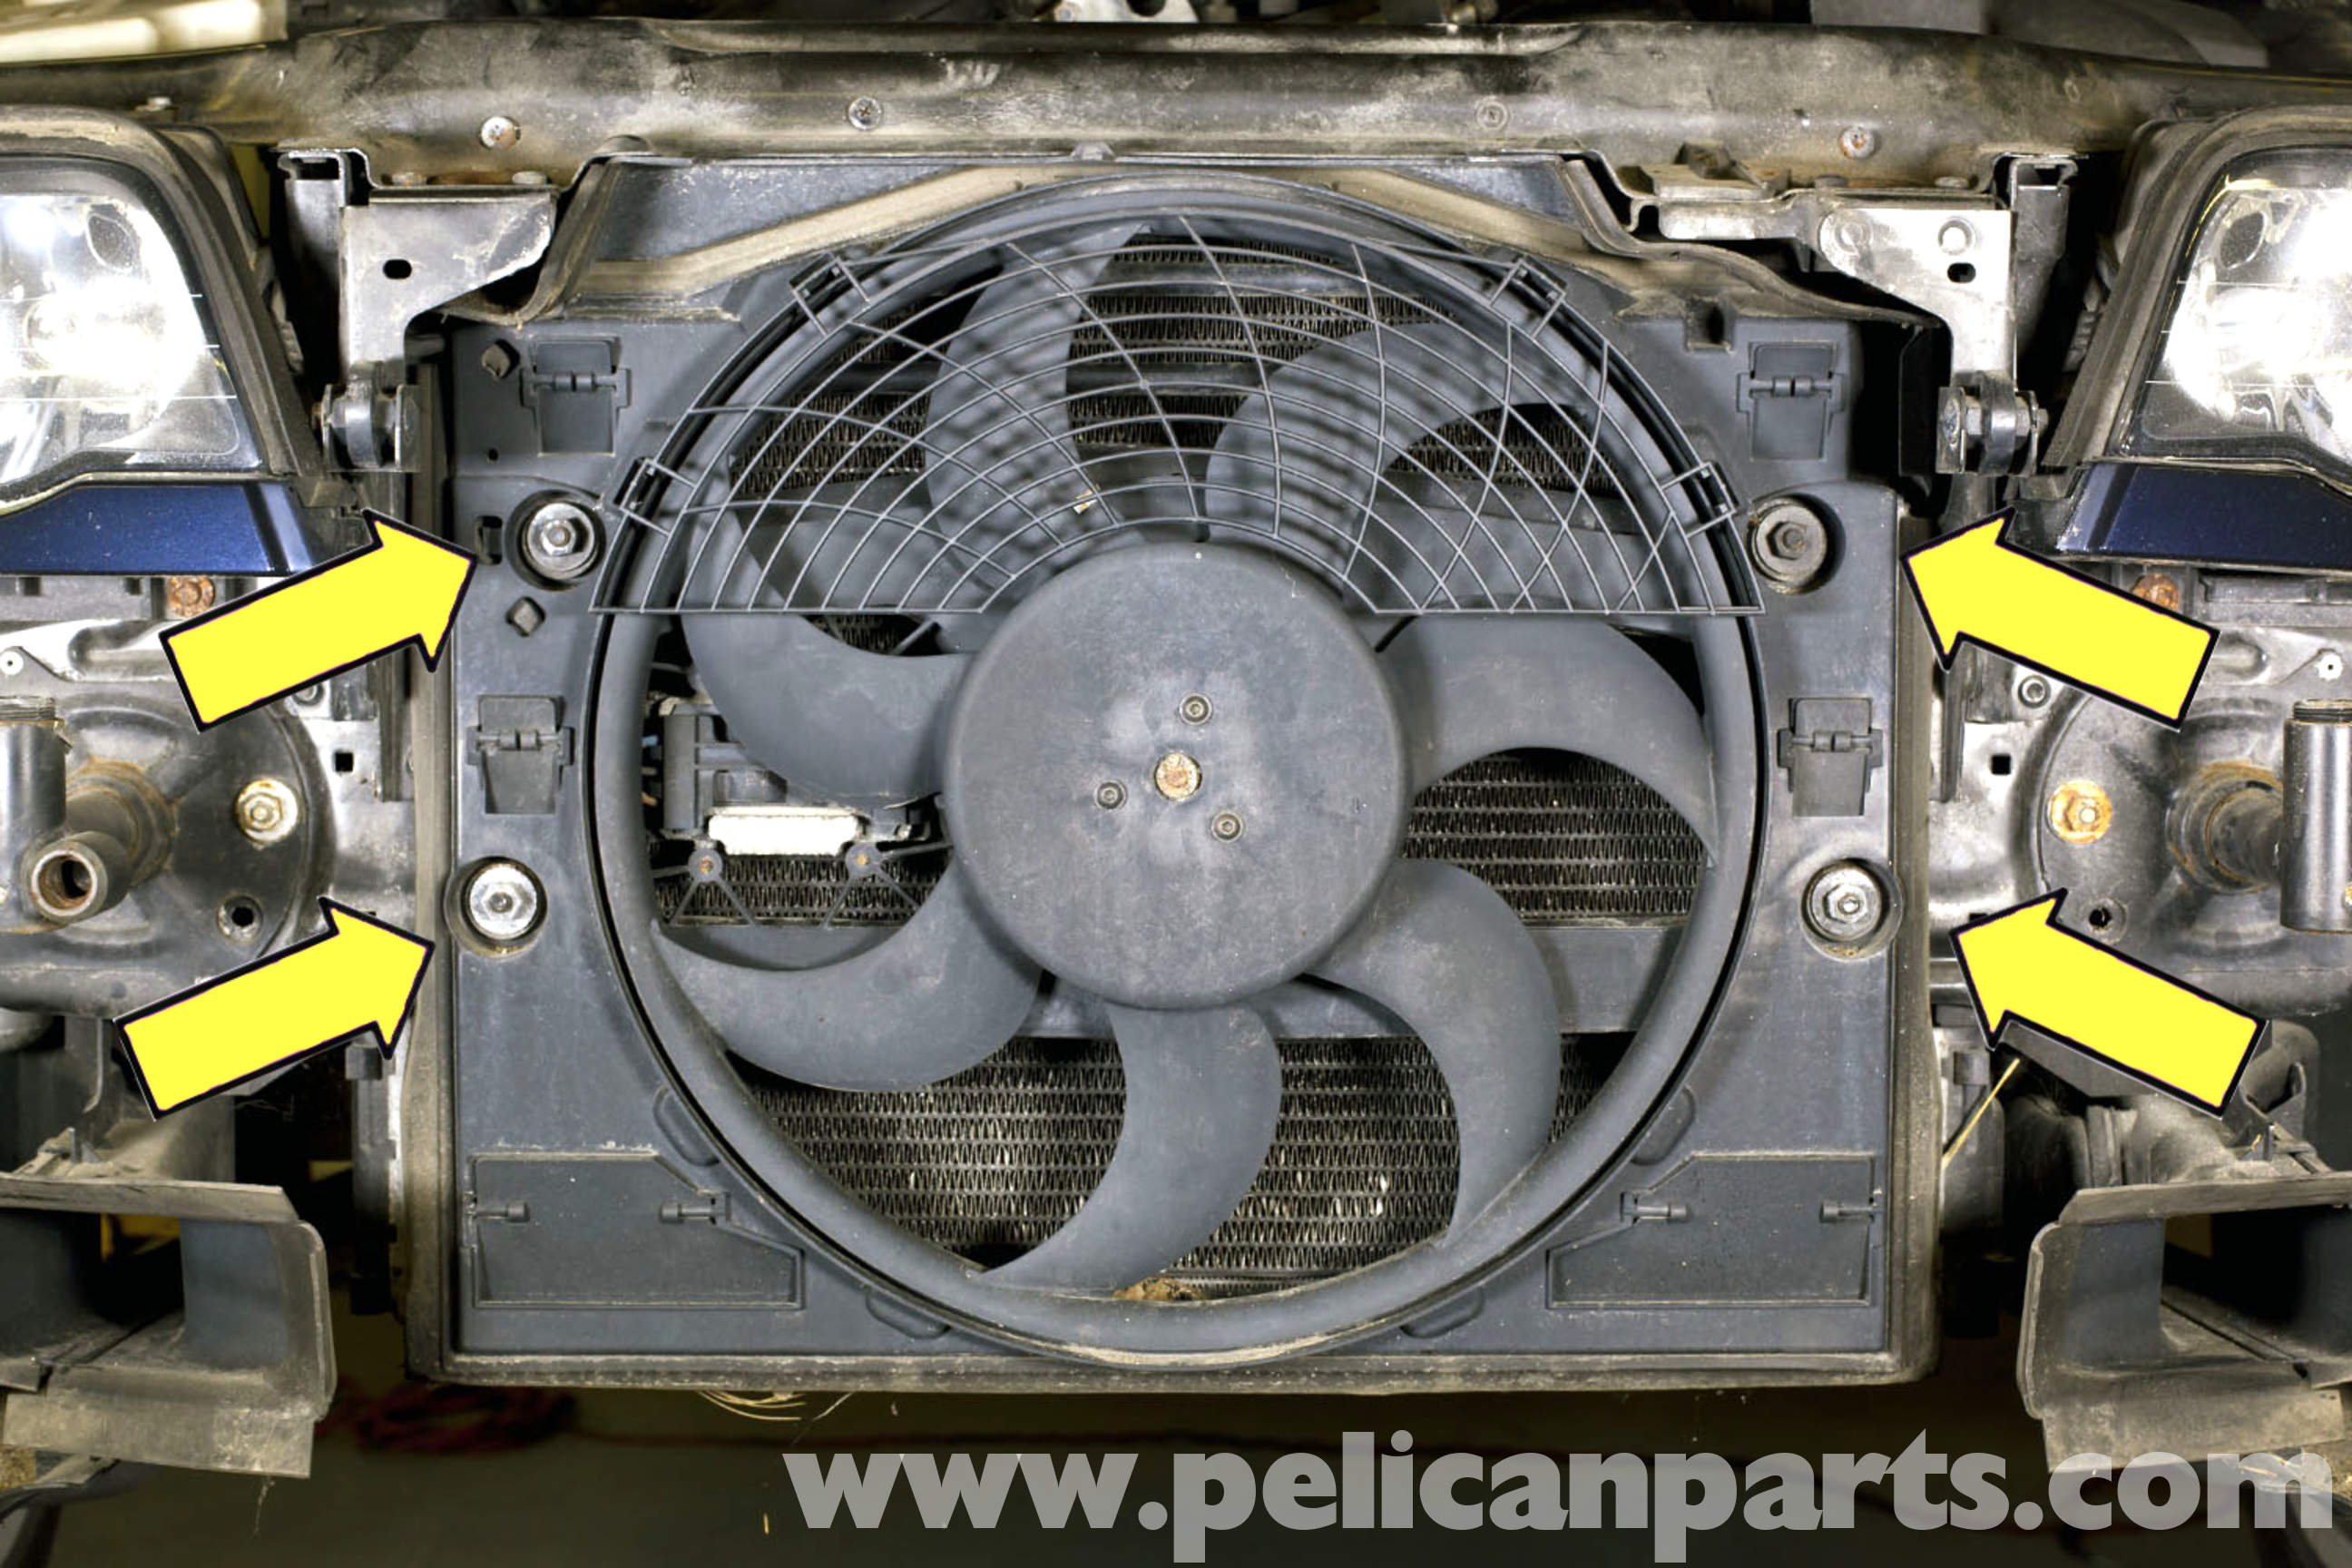 bmw e46 cooling fan replacement bmw 325i 2001 2005 bmw 325xi rh pelicanparts com 1999 Audi A4 Owner's Manual Audi A4 Owners ManualDownload